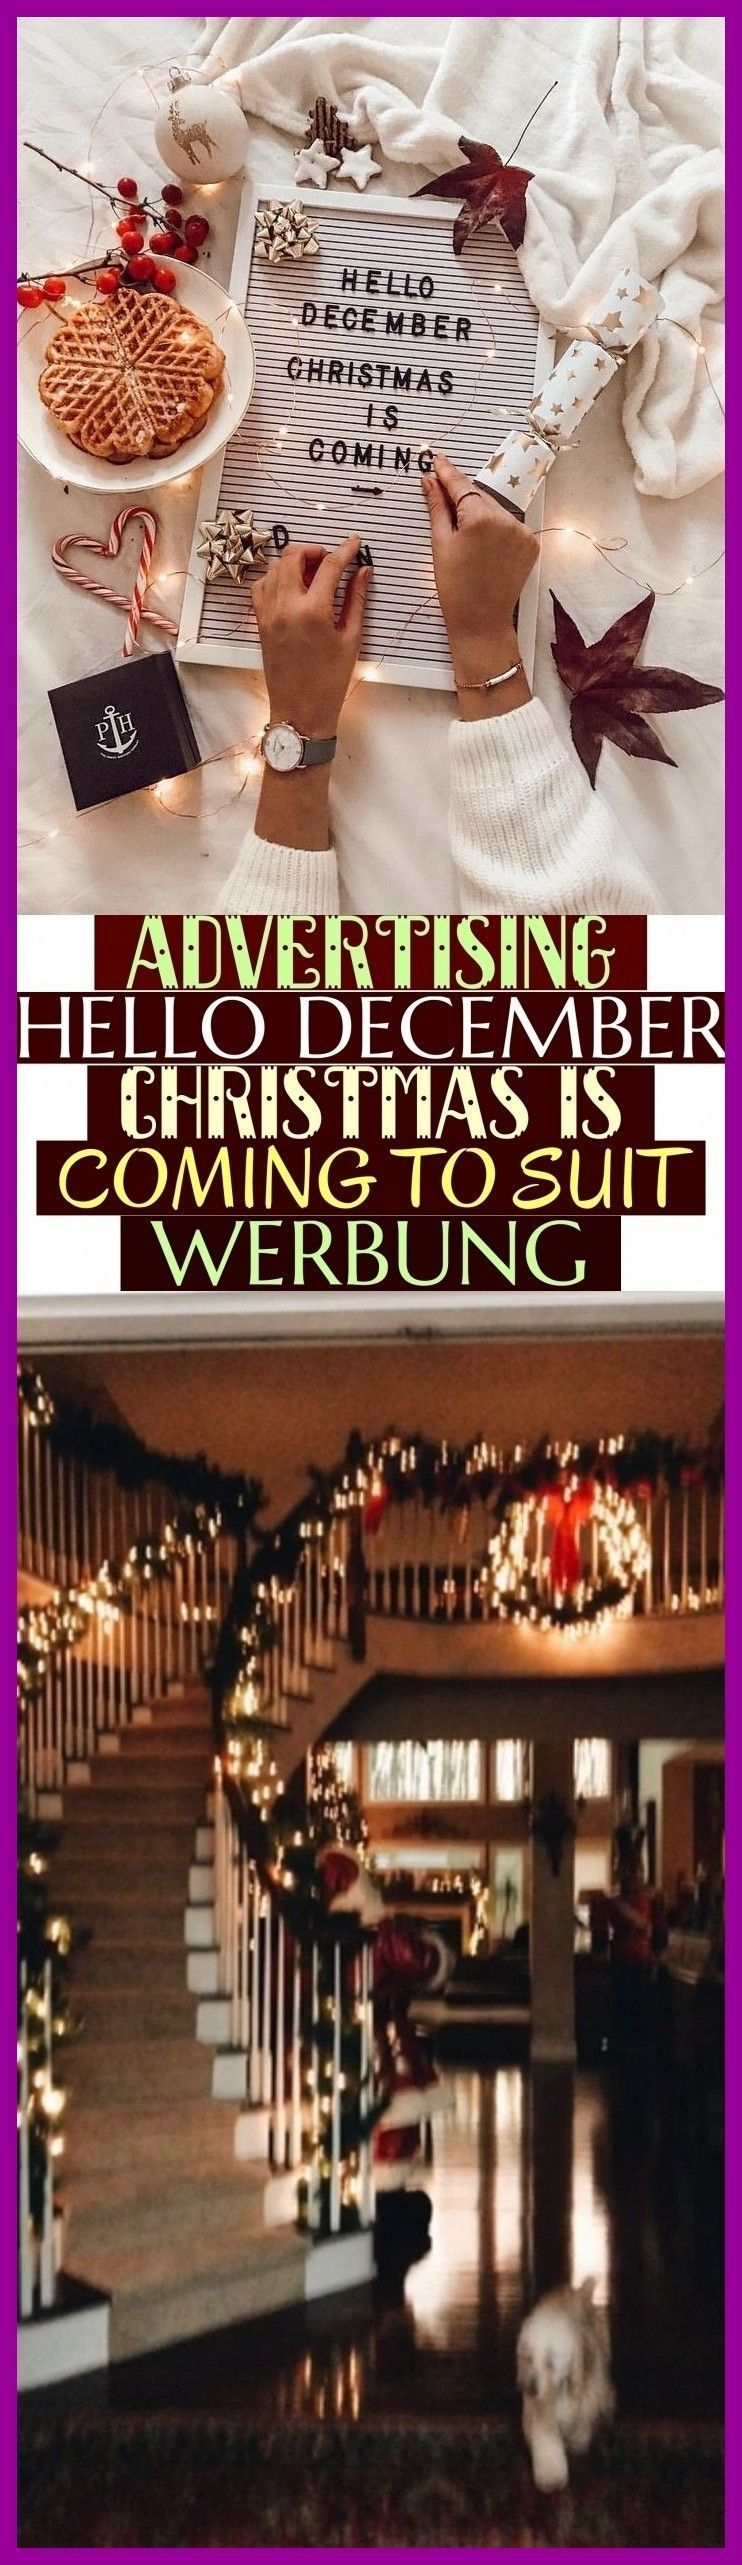 More Than 66  Advertising Hello December Christmas Is Coming To Suit - Werbung ! Advertising hello december christmas is coming to suit ...- Werbung hello december ❄️ christmas is coming  More Than 66  Advertising Hello December Christmas Is Coming To Suit - Werbung ! Advertising hello december christmas is coming to suit ...- Werbung hello december ❄️ christmas is coming #hellodecemberchristmas More Than 66  Advertising Hello December Christmas Is Coming To Suit - Werbung ! Advertising #hellodecemberchristmas